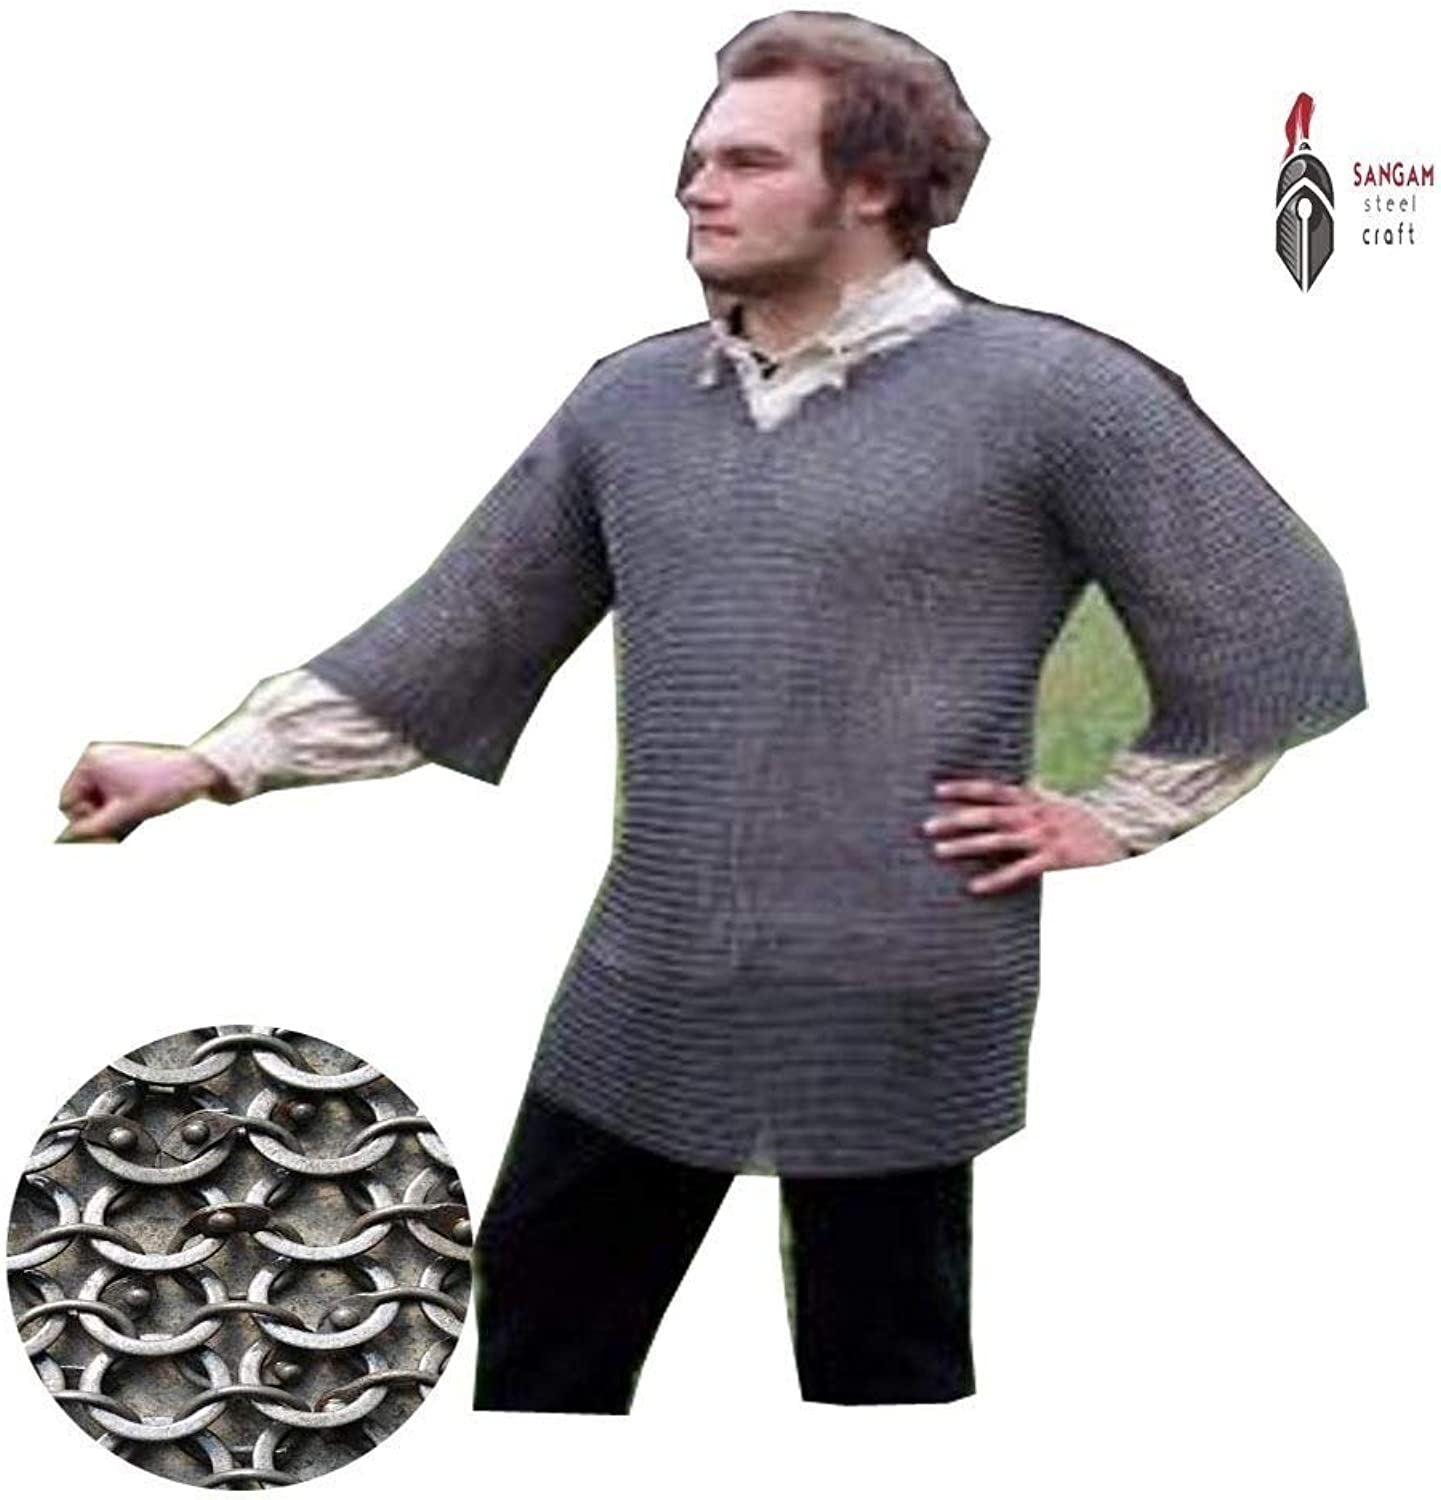 NASIR ALI Round Riveted with Flat Warser Chainmail Shirt 9 mm Half Sleeve Hubergion Shirt (Large, Oiled)